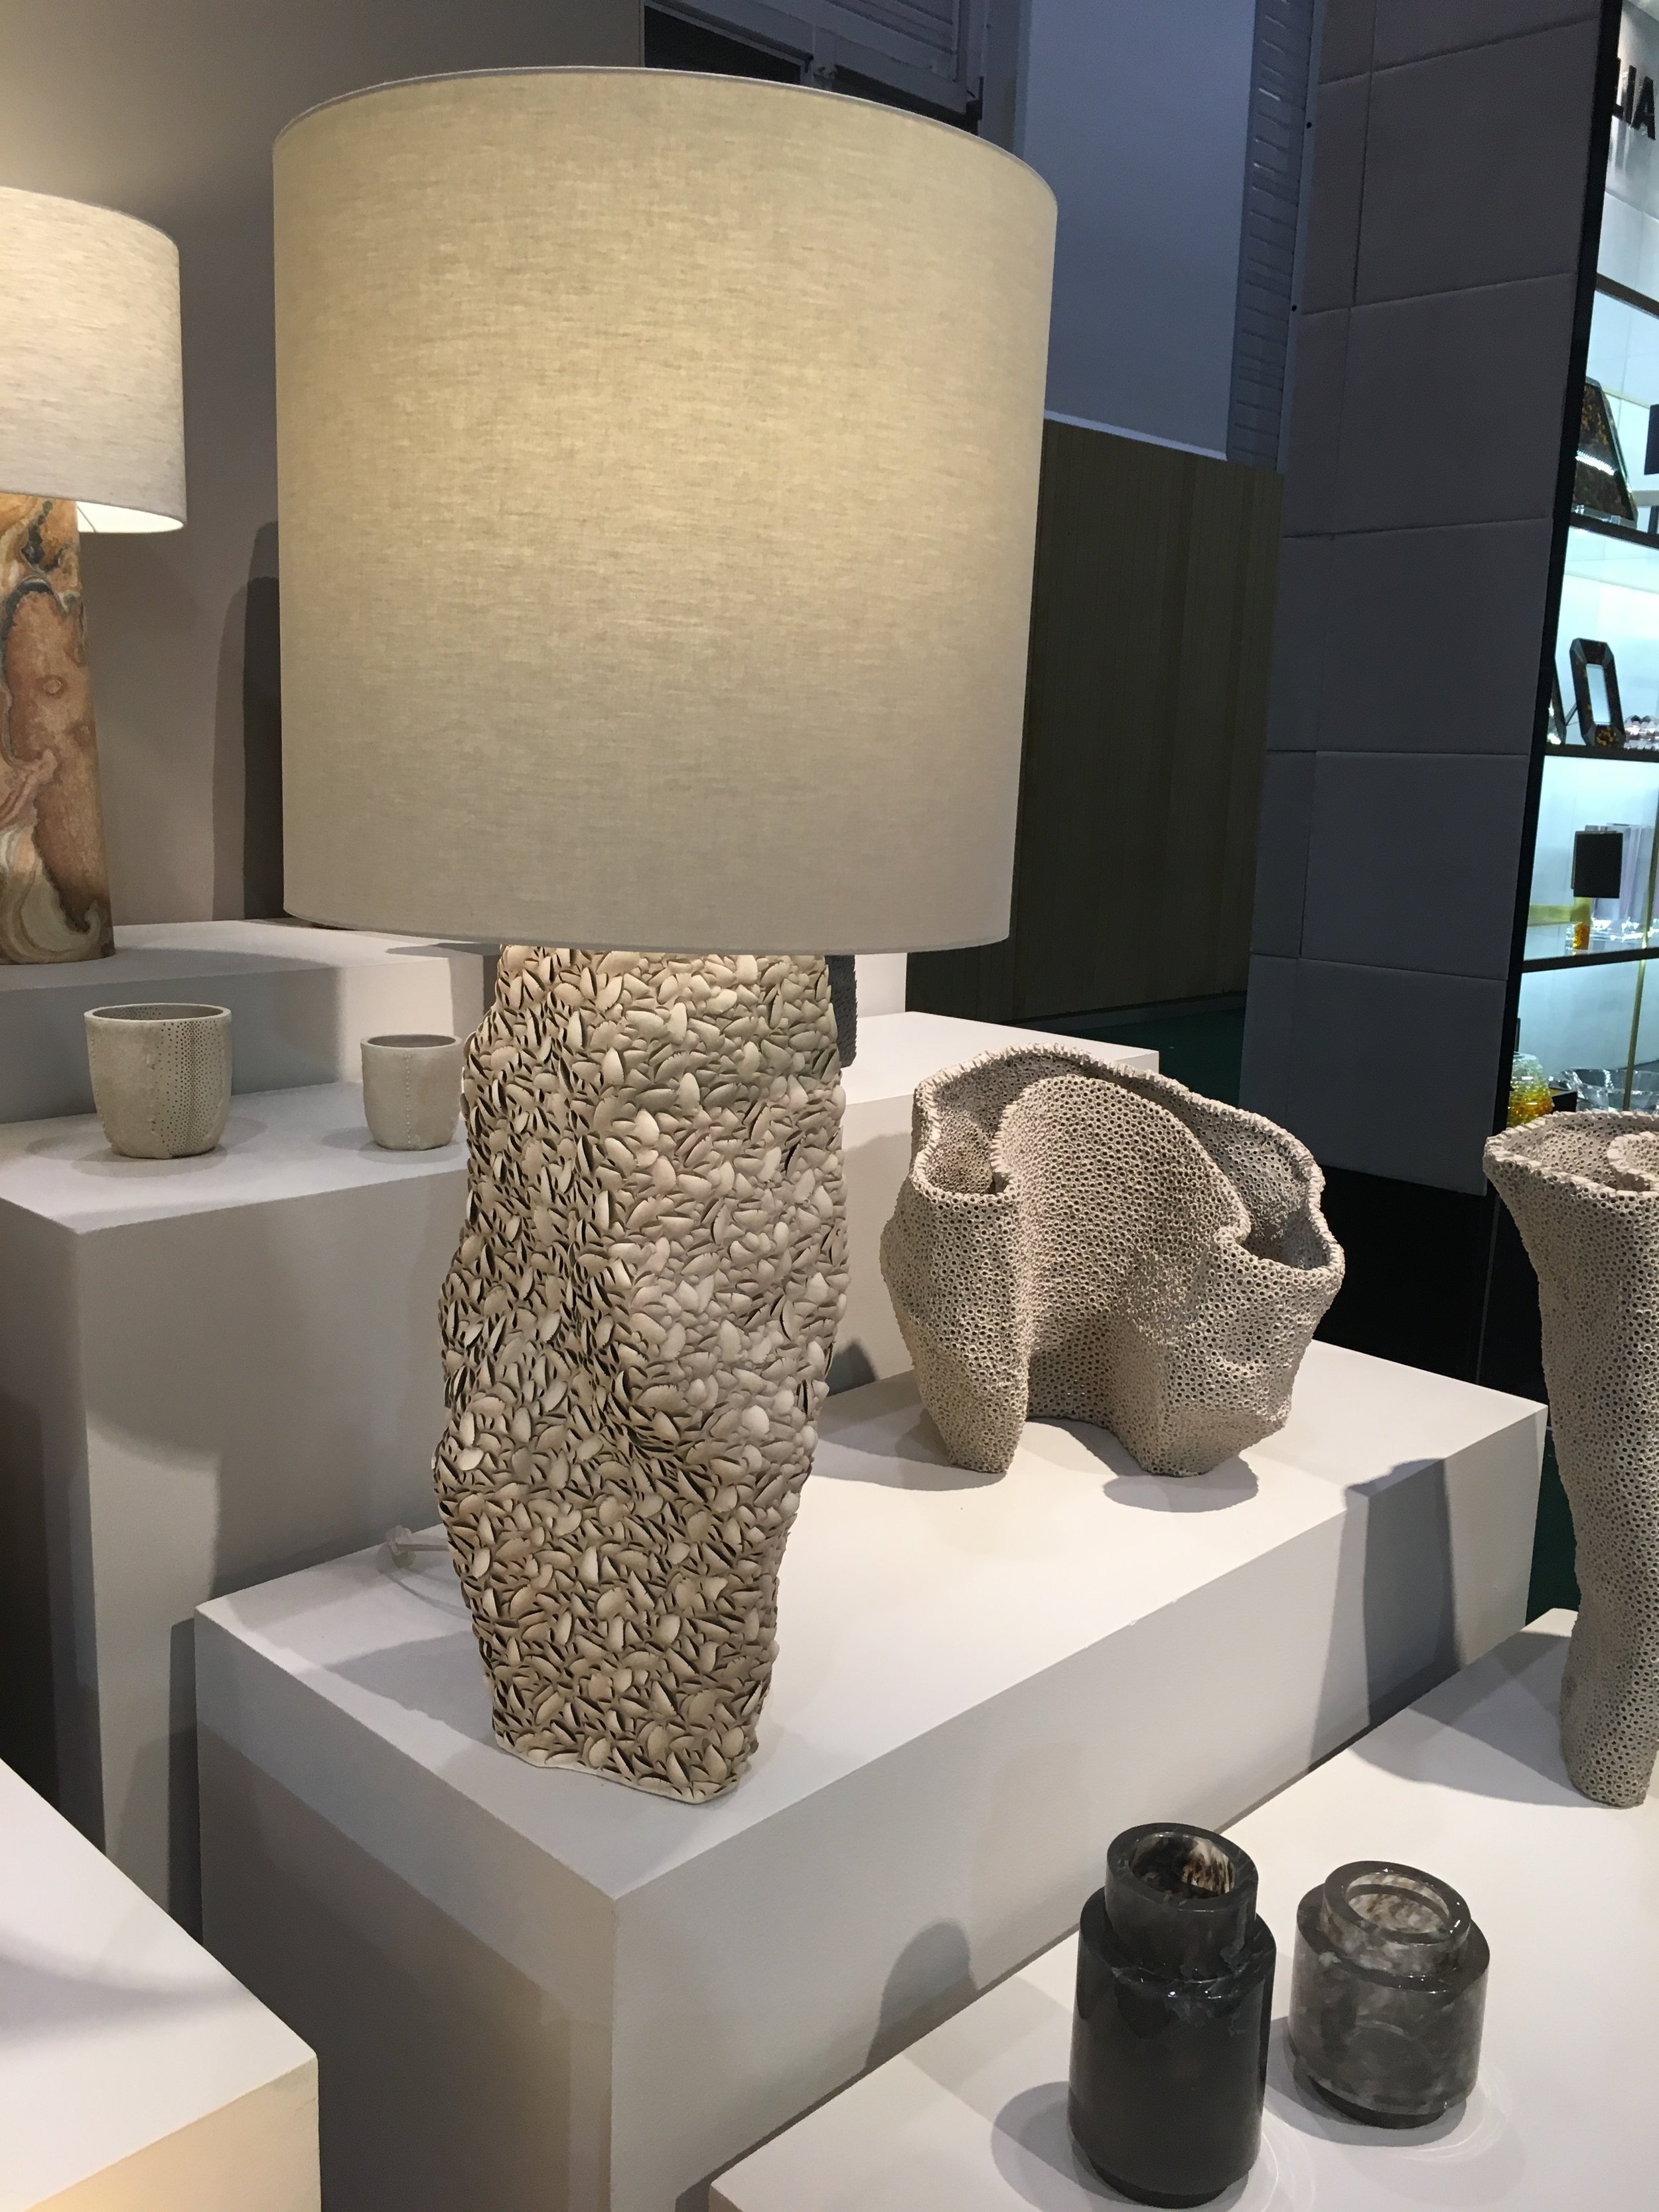 Maison et Objet: This artist's work took my breath away - Each individual item was hand moulded and made out of natural resources.